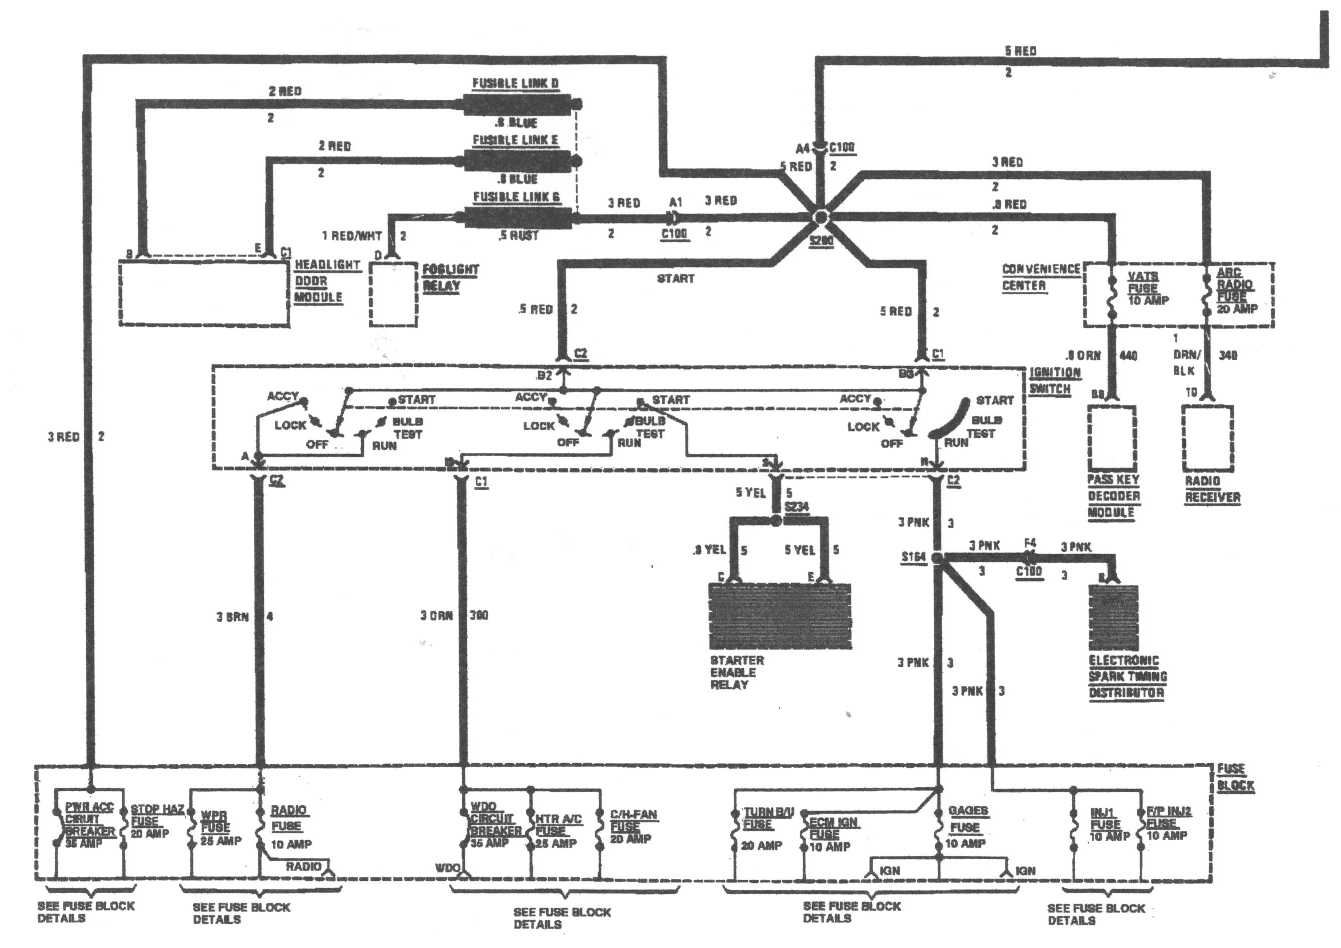 1996 Camaro Rs Wiring Diagram | Wiring Liry on 91 camaro starter relay, 91 camaro fan relay, 91 camaro speedometer, 91 camaro window motor, 91 camaro fuel filter, 91 camaro wiring schematic, 91 camaro fuse block, 91 camaro neutral safety switch, 91 camaro throttle body, 91 camaro muffler, 91 camaro fuse diagram, 91 camaro exhaust manifold, 91 camaro ignition switch, 91 camaro o2 sensor, 91 camaro vacuum diagram, 91 camaro radiator, 91 camaro heater core, 91 camaro distributor cap, 91 camaro egr valve, 91 camaro fuel gauge,